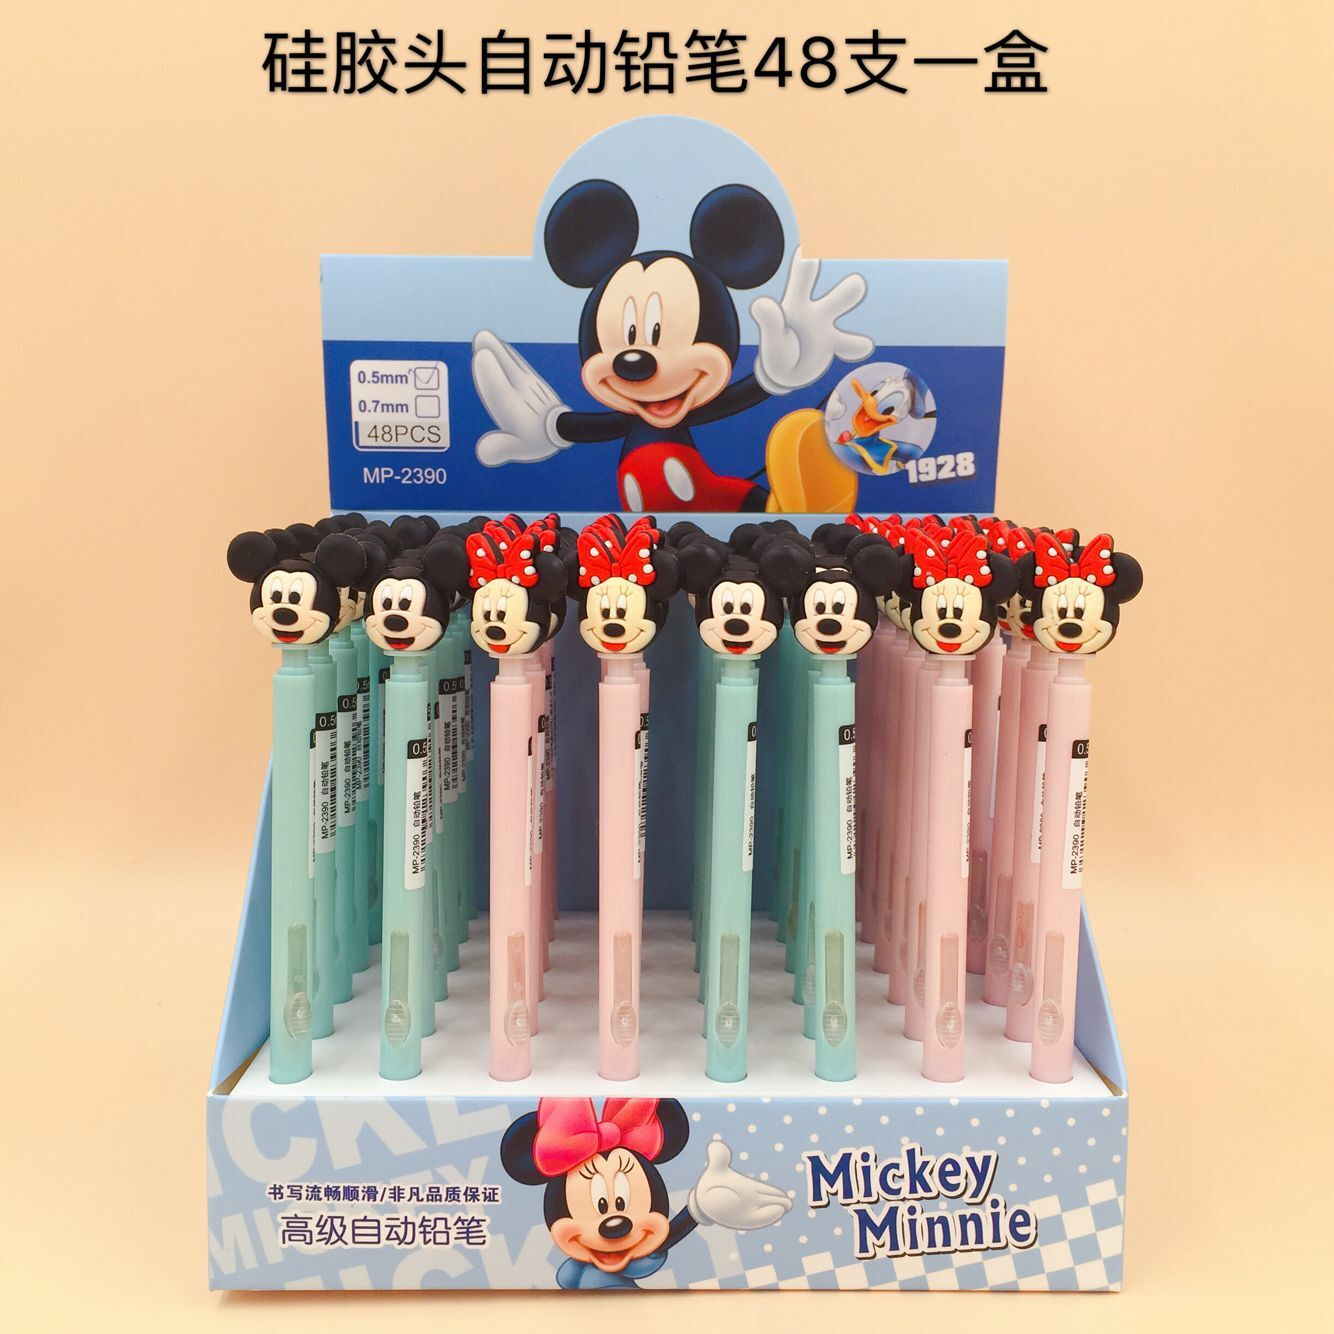 48 pcs 1 lot Cartoon mouse press Mechanical Pencils School Office Supply Student Stationery Kids Gift